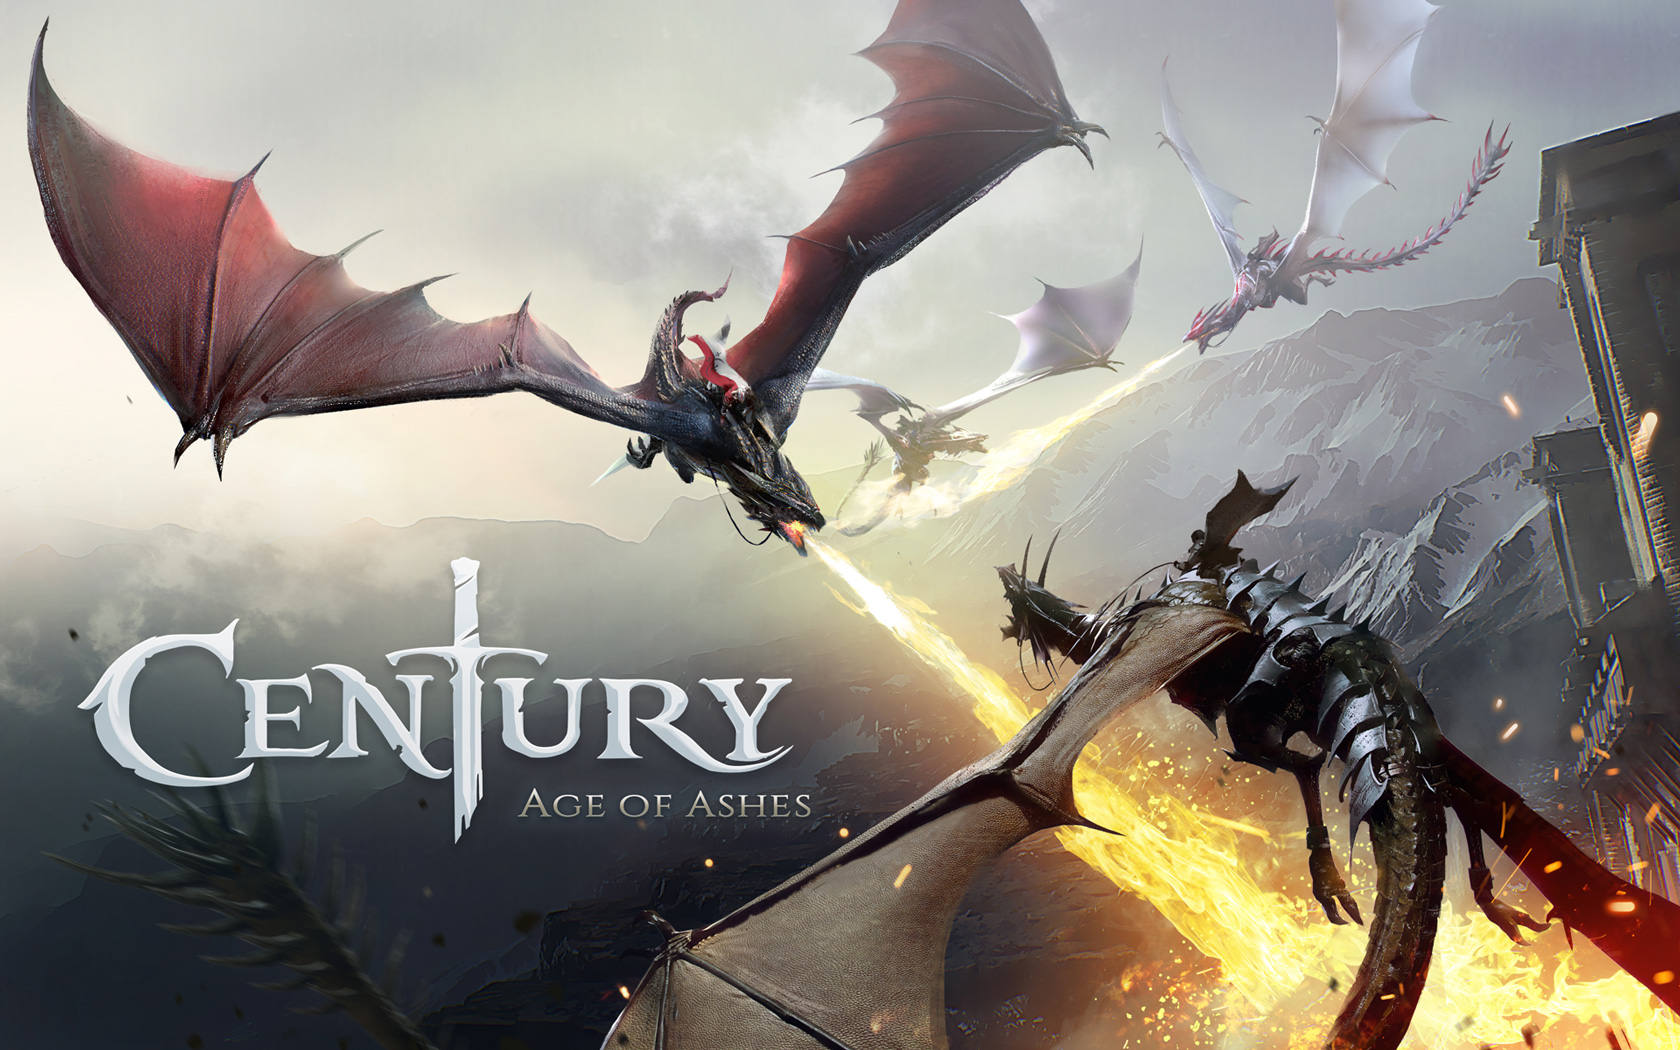 Free Century: Age of Ashes Wallpaper in 1680x1050